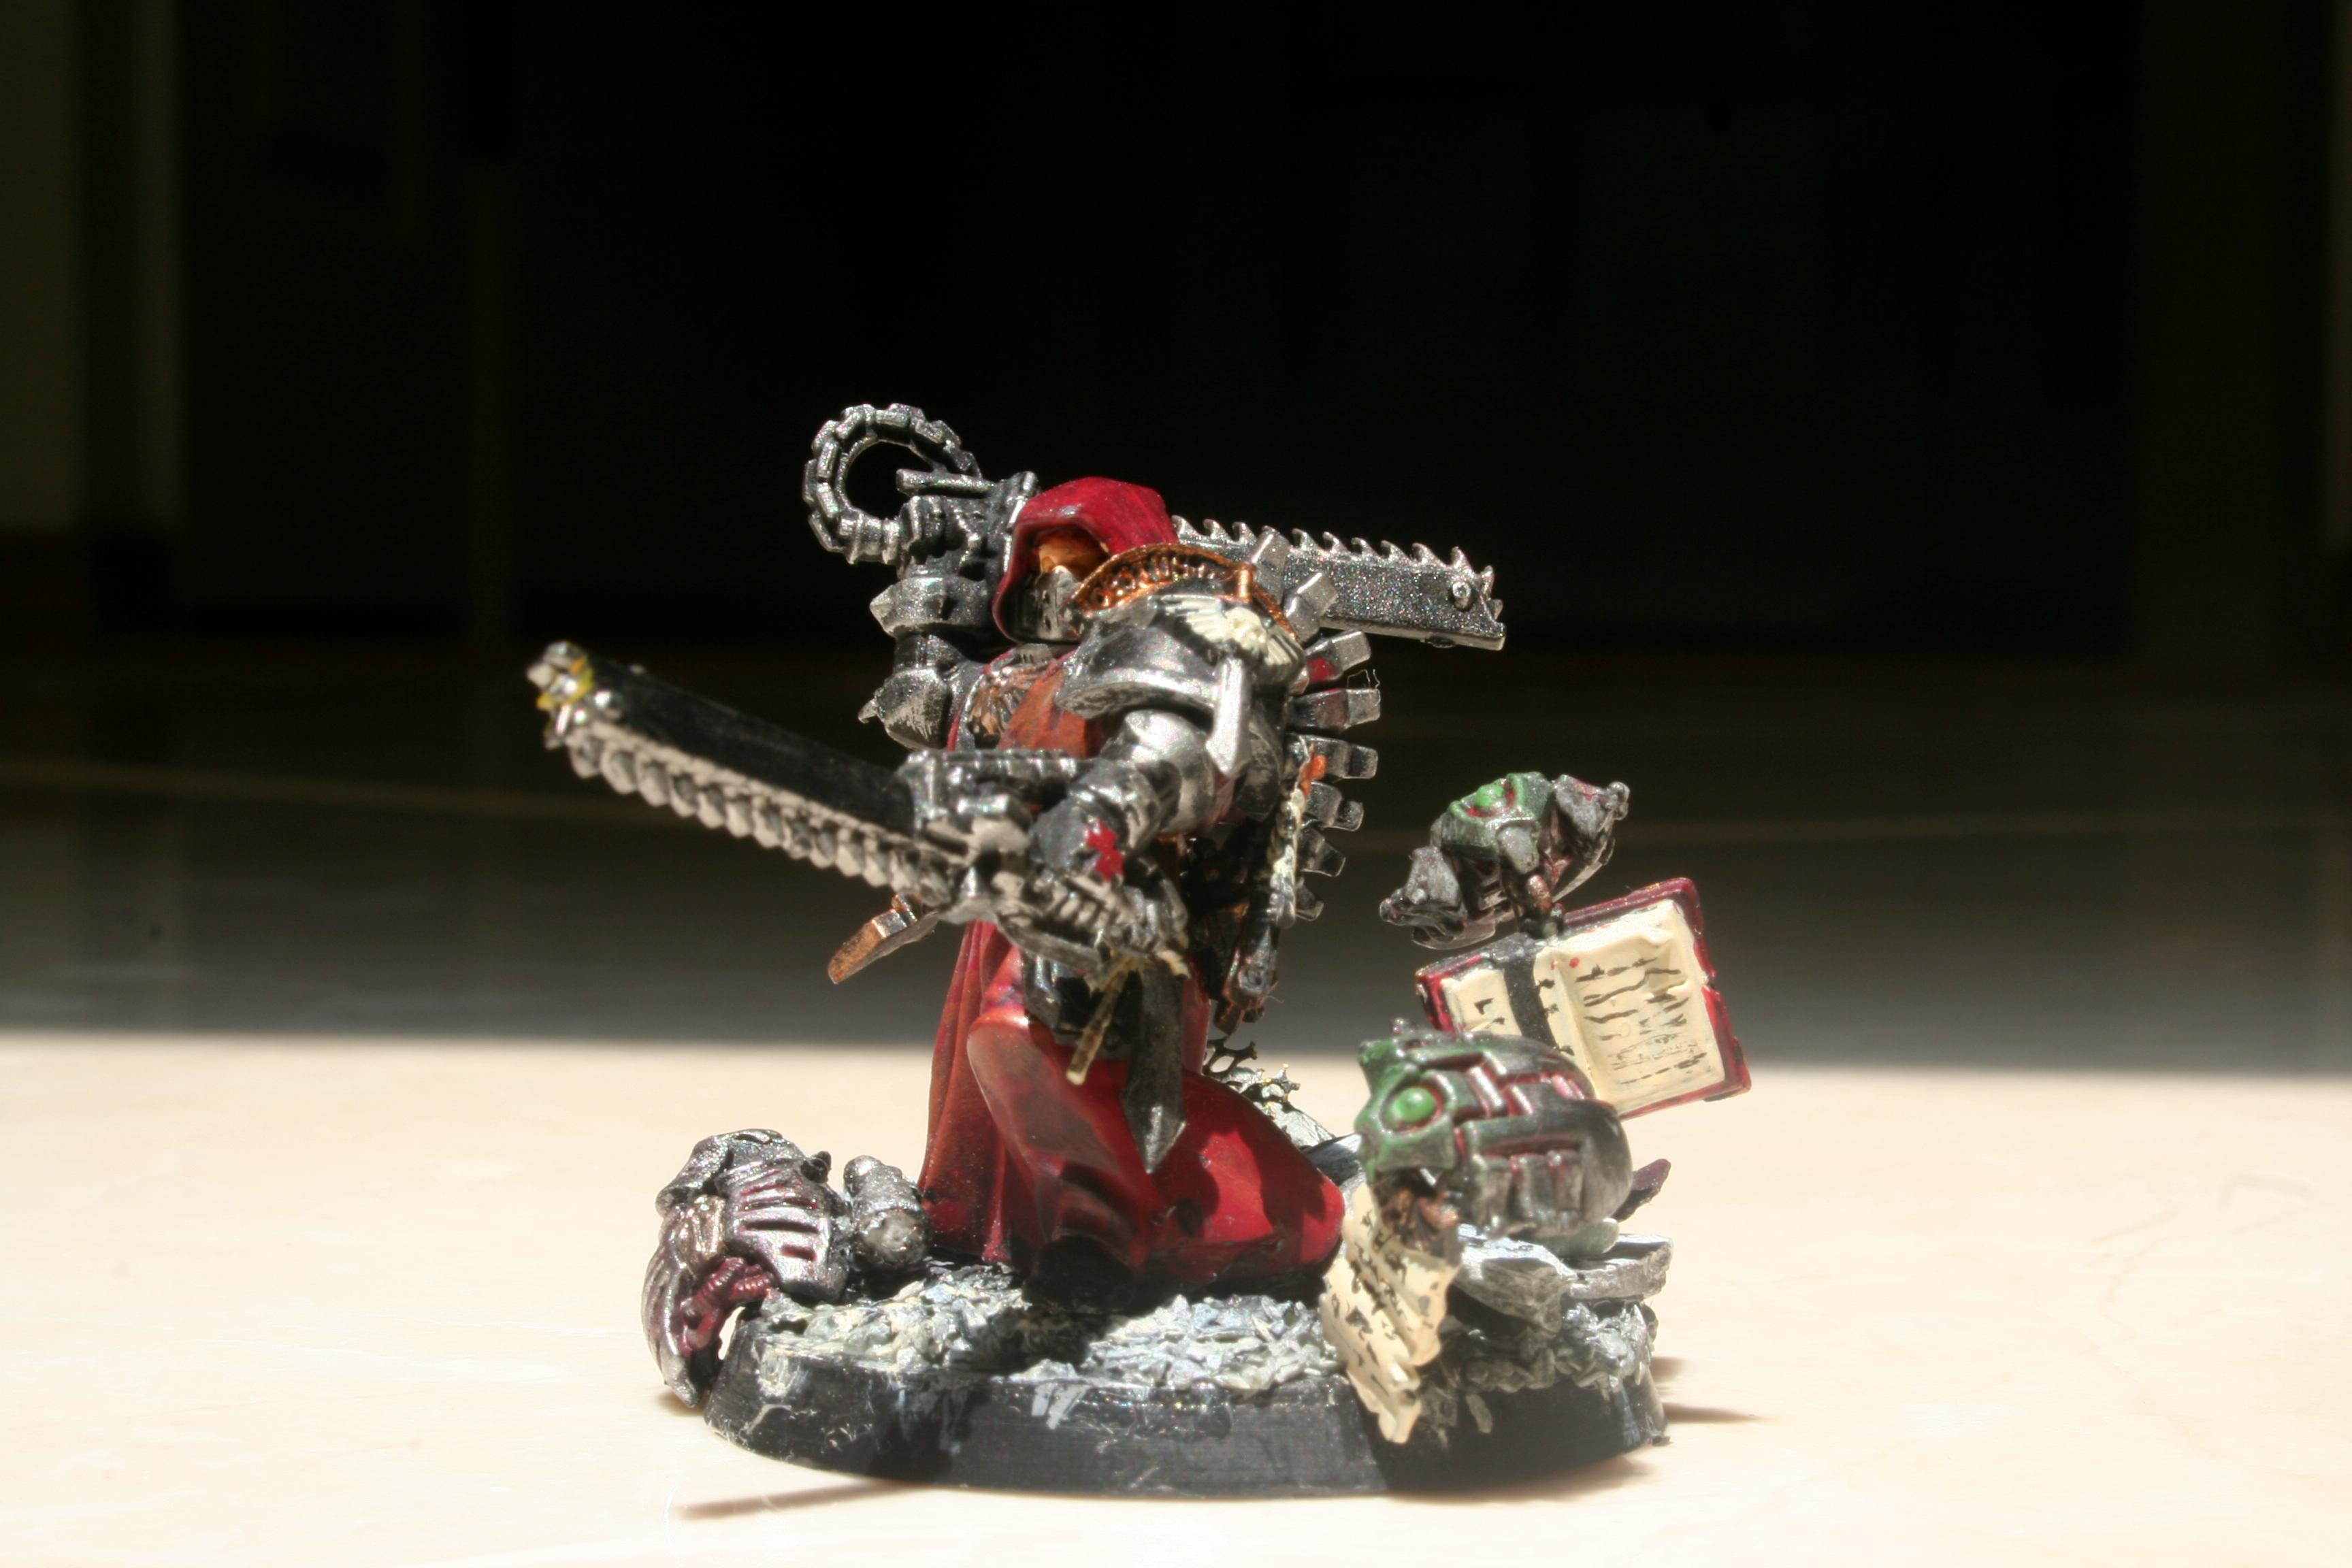 Adeptus Mechanicus, Base, Chainswords, Conversion, Dark Heresy, Necrons, Rpg, Servo Skulls, Space Marines, Tech Priest